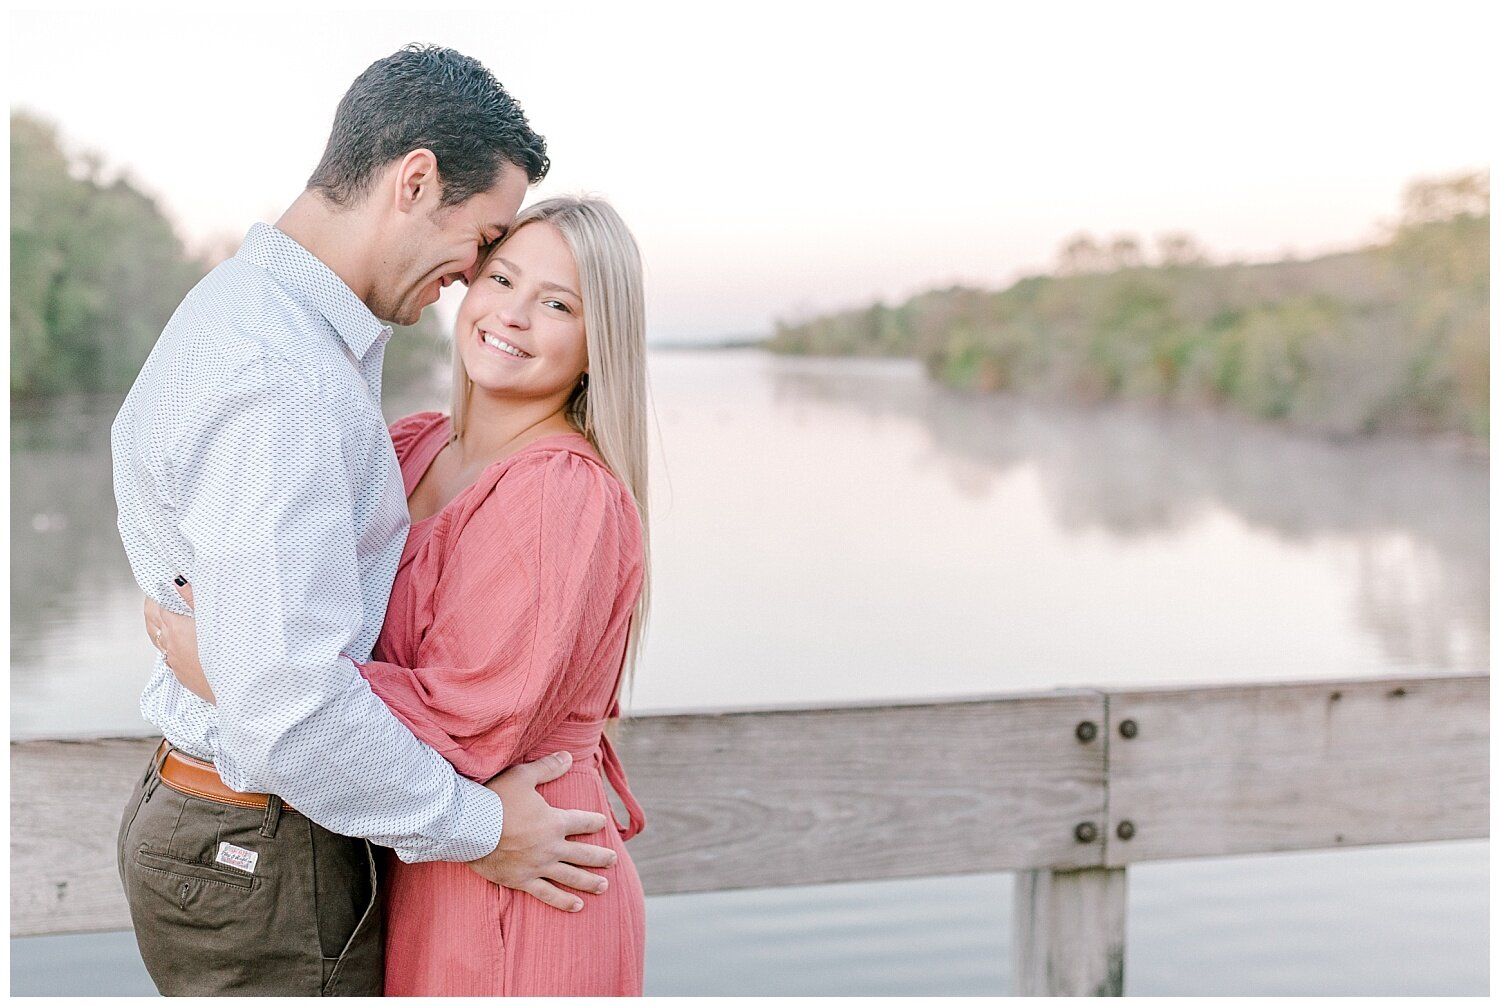 Peace Valley Park Doylestown bucks county PA fall sunrise engagement session  lehigh valley pennsylvania based wedding and lifestyle photographer Jeannie Lytle of Lytle Photography Company_0002.jpg